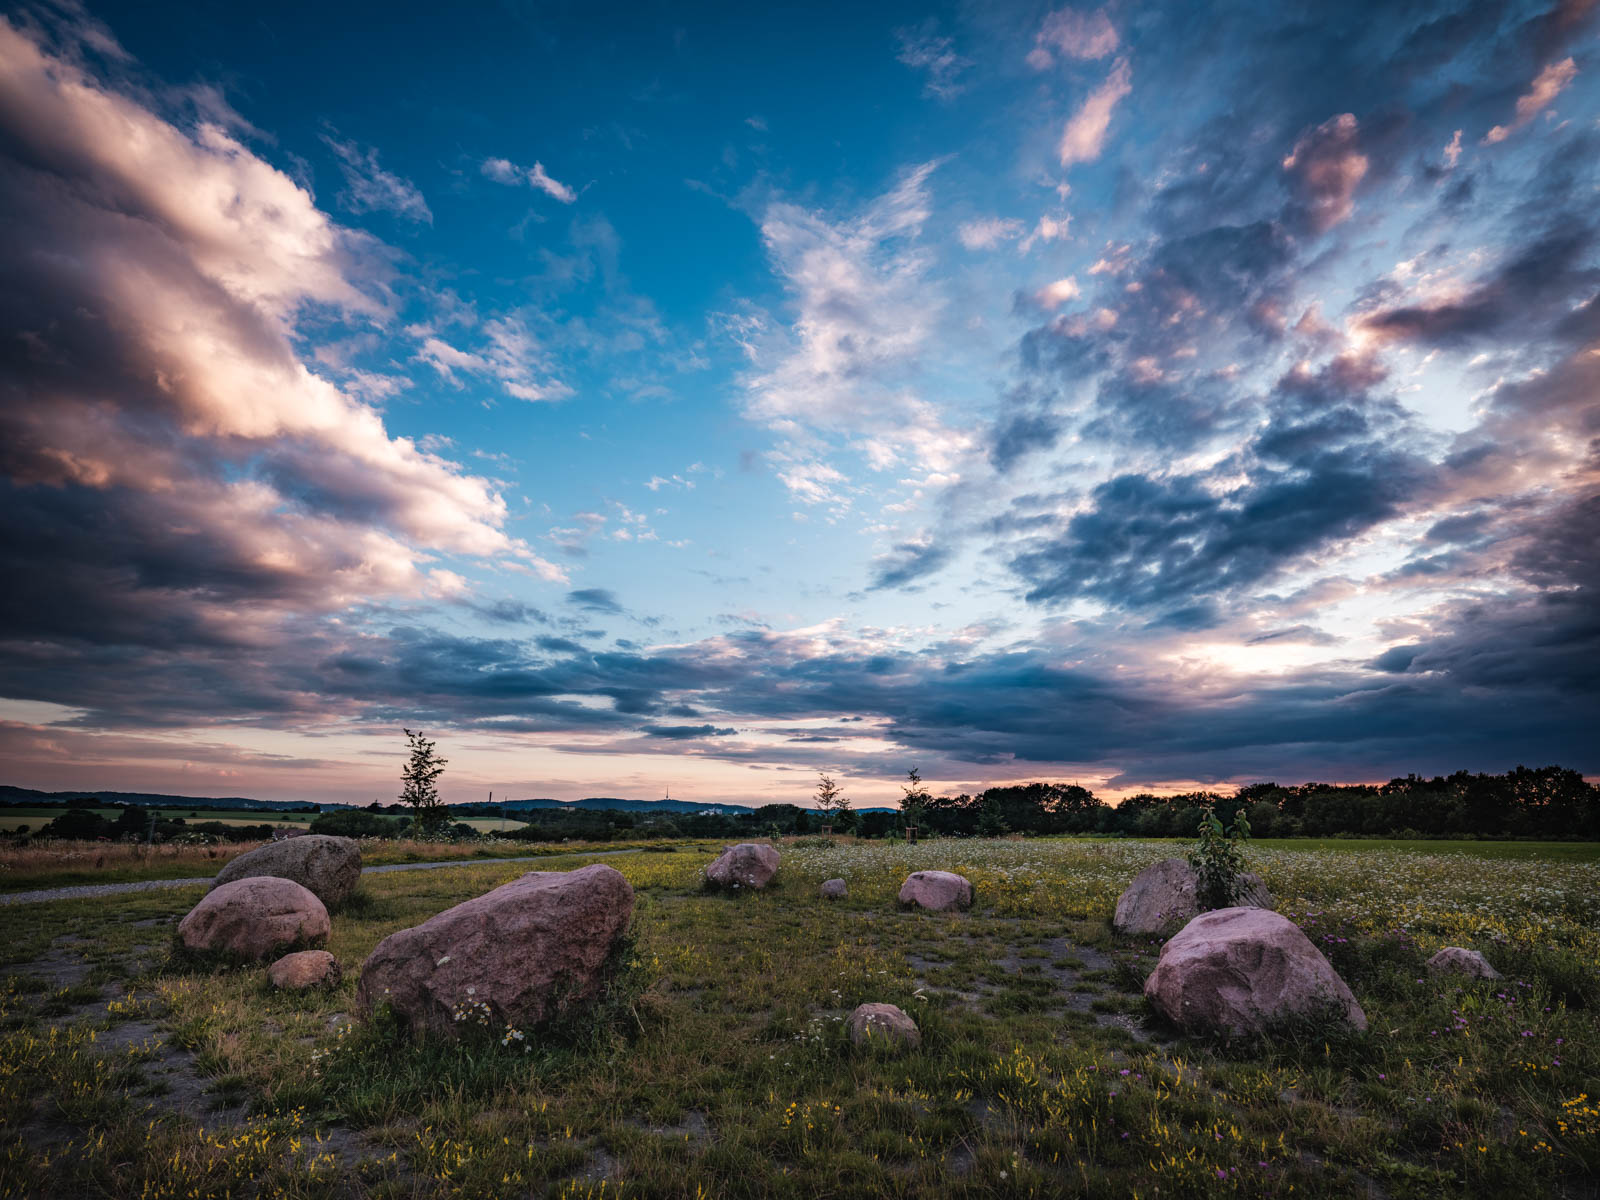 Landscape with erratic rocks at dusk in July 2020 (Bielefeld, Germany).